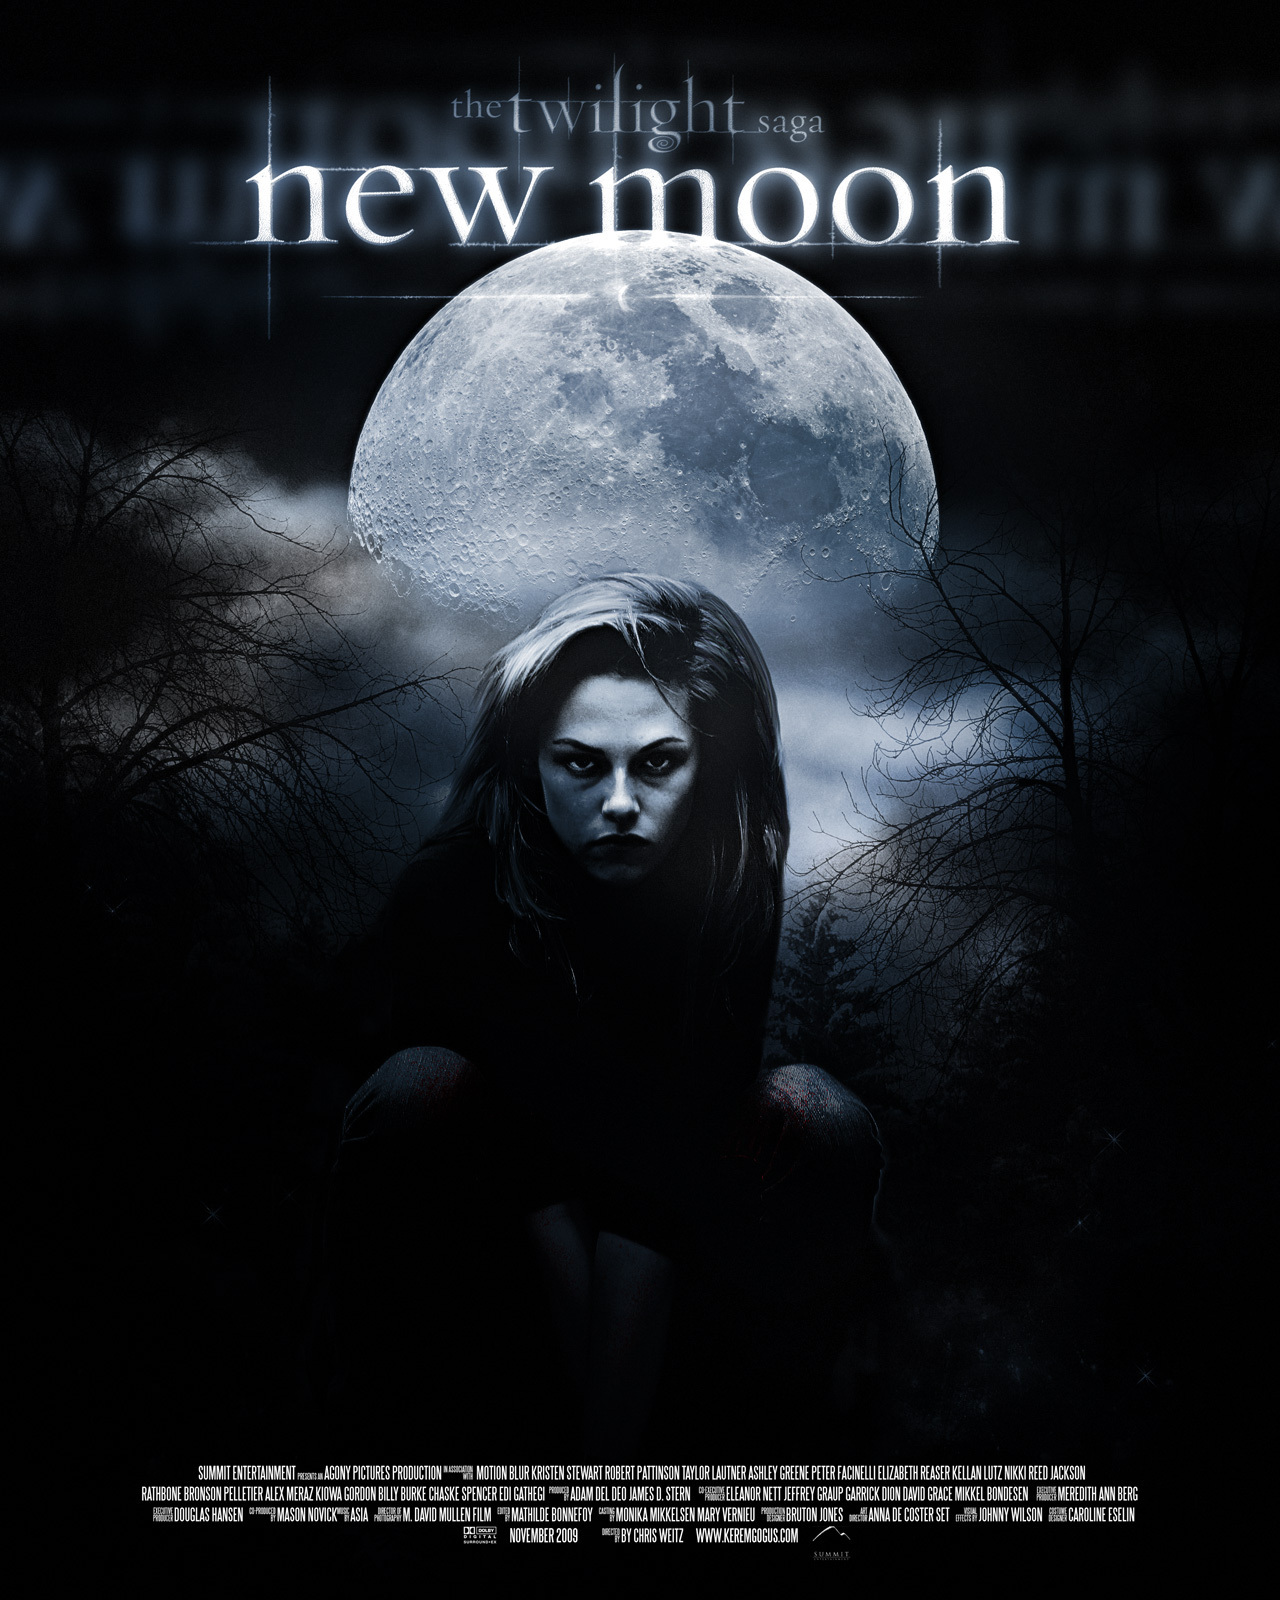 Bella twilight series fan art 6664992 fanpop for What does the song moon river mean